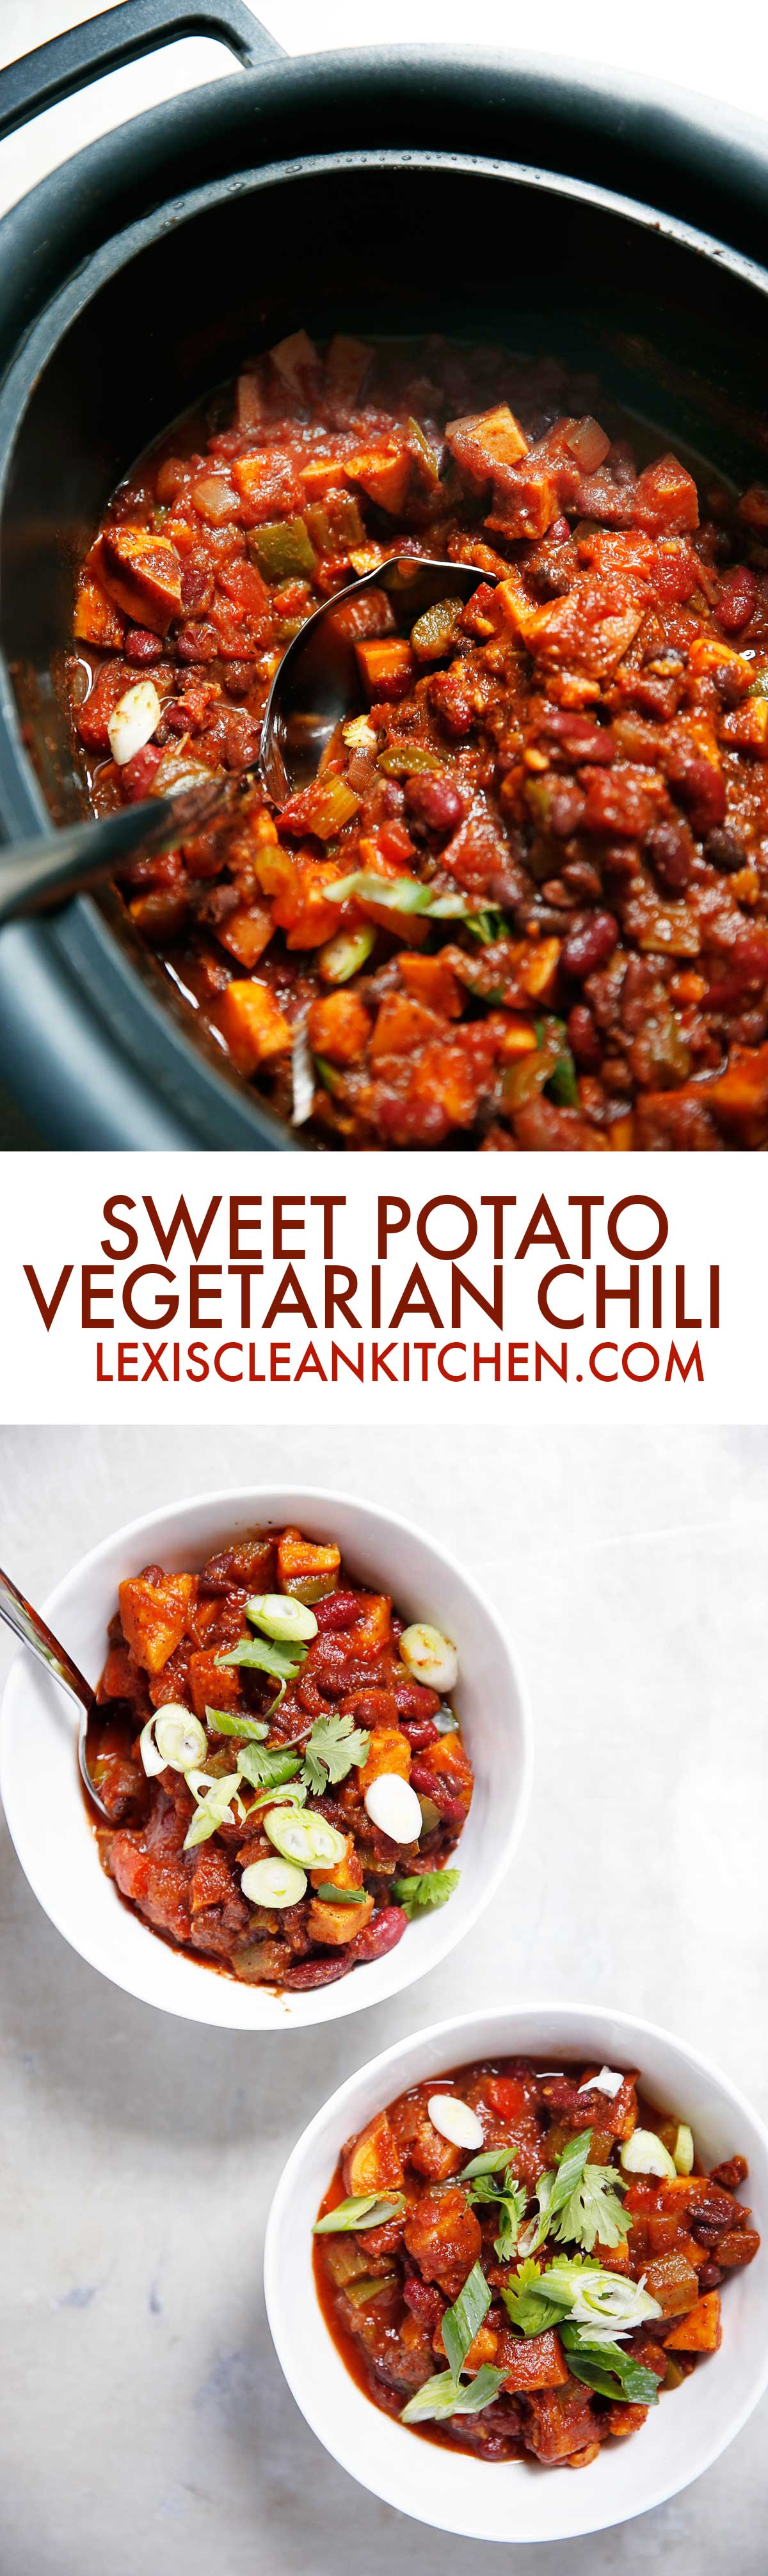 Slow Cooker Sweet Potato Chili [vegetarian, dairy-free, paleo-friendly]| Lexi's Clean Kitchen